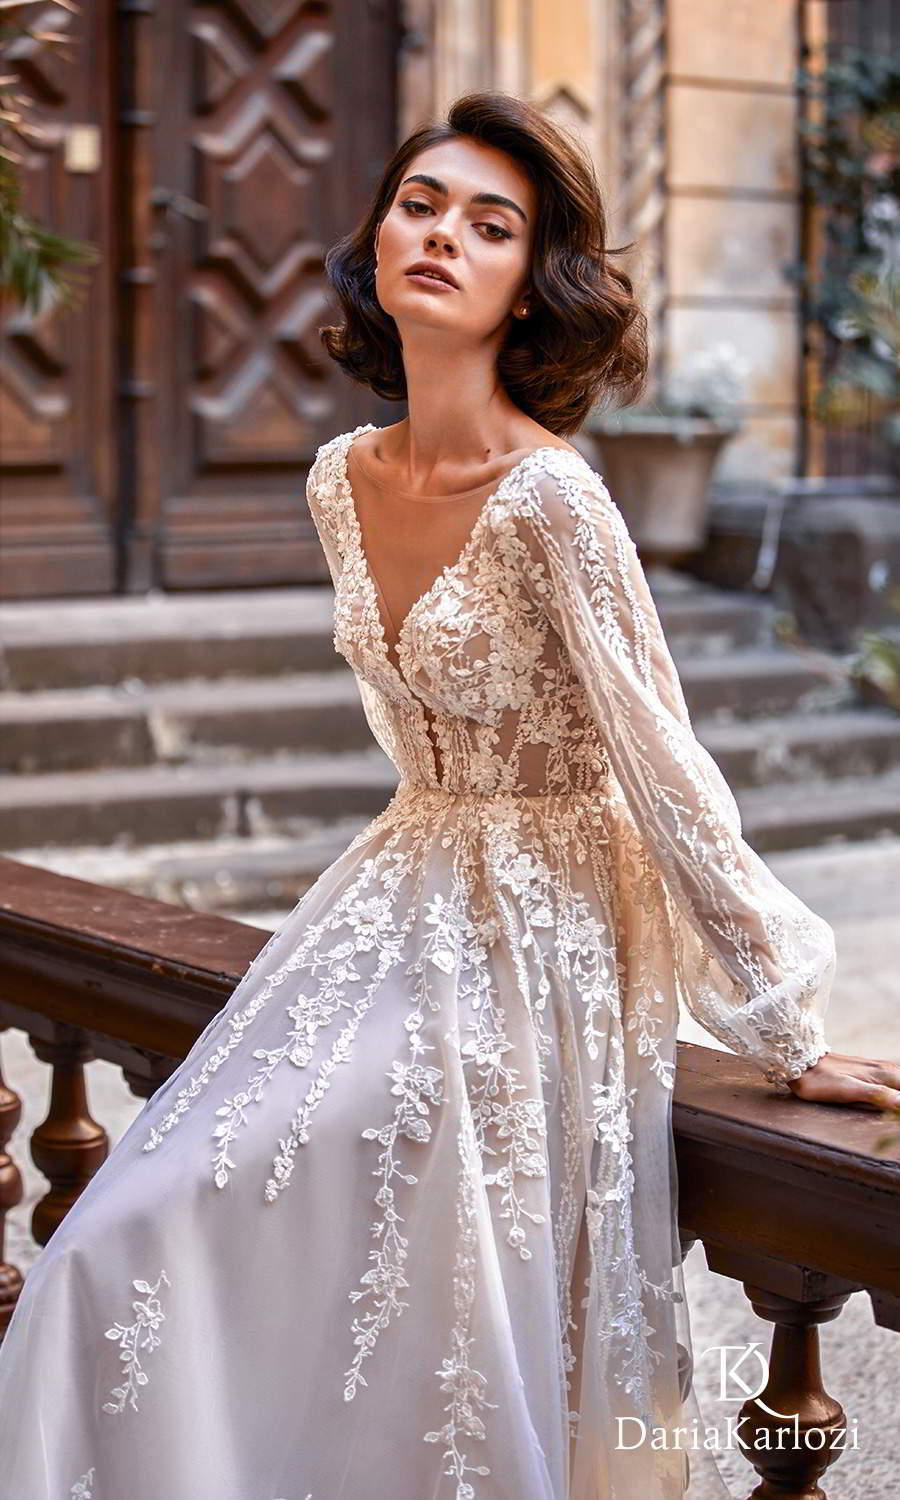 daria karlozi 2021 graceful dream bridal long bishop sleeves v neckline fully embellished boho a line ball gown wedding dress chapel train (light kiss) zv